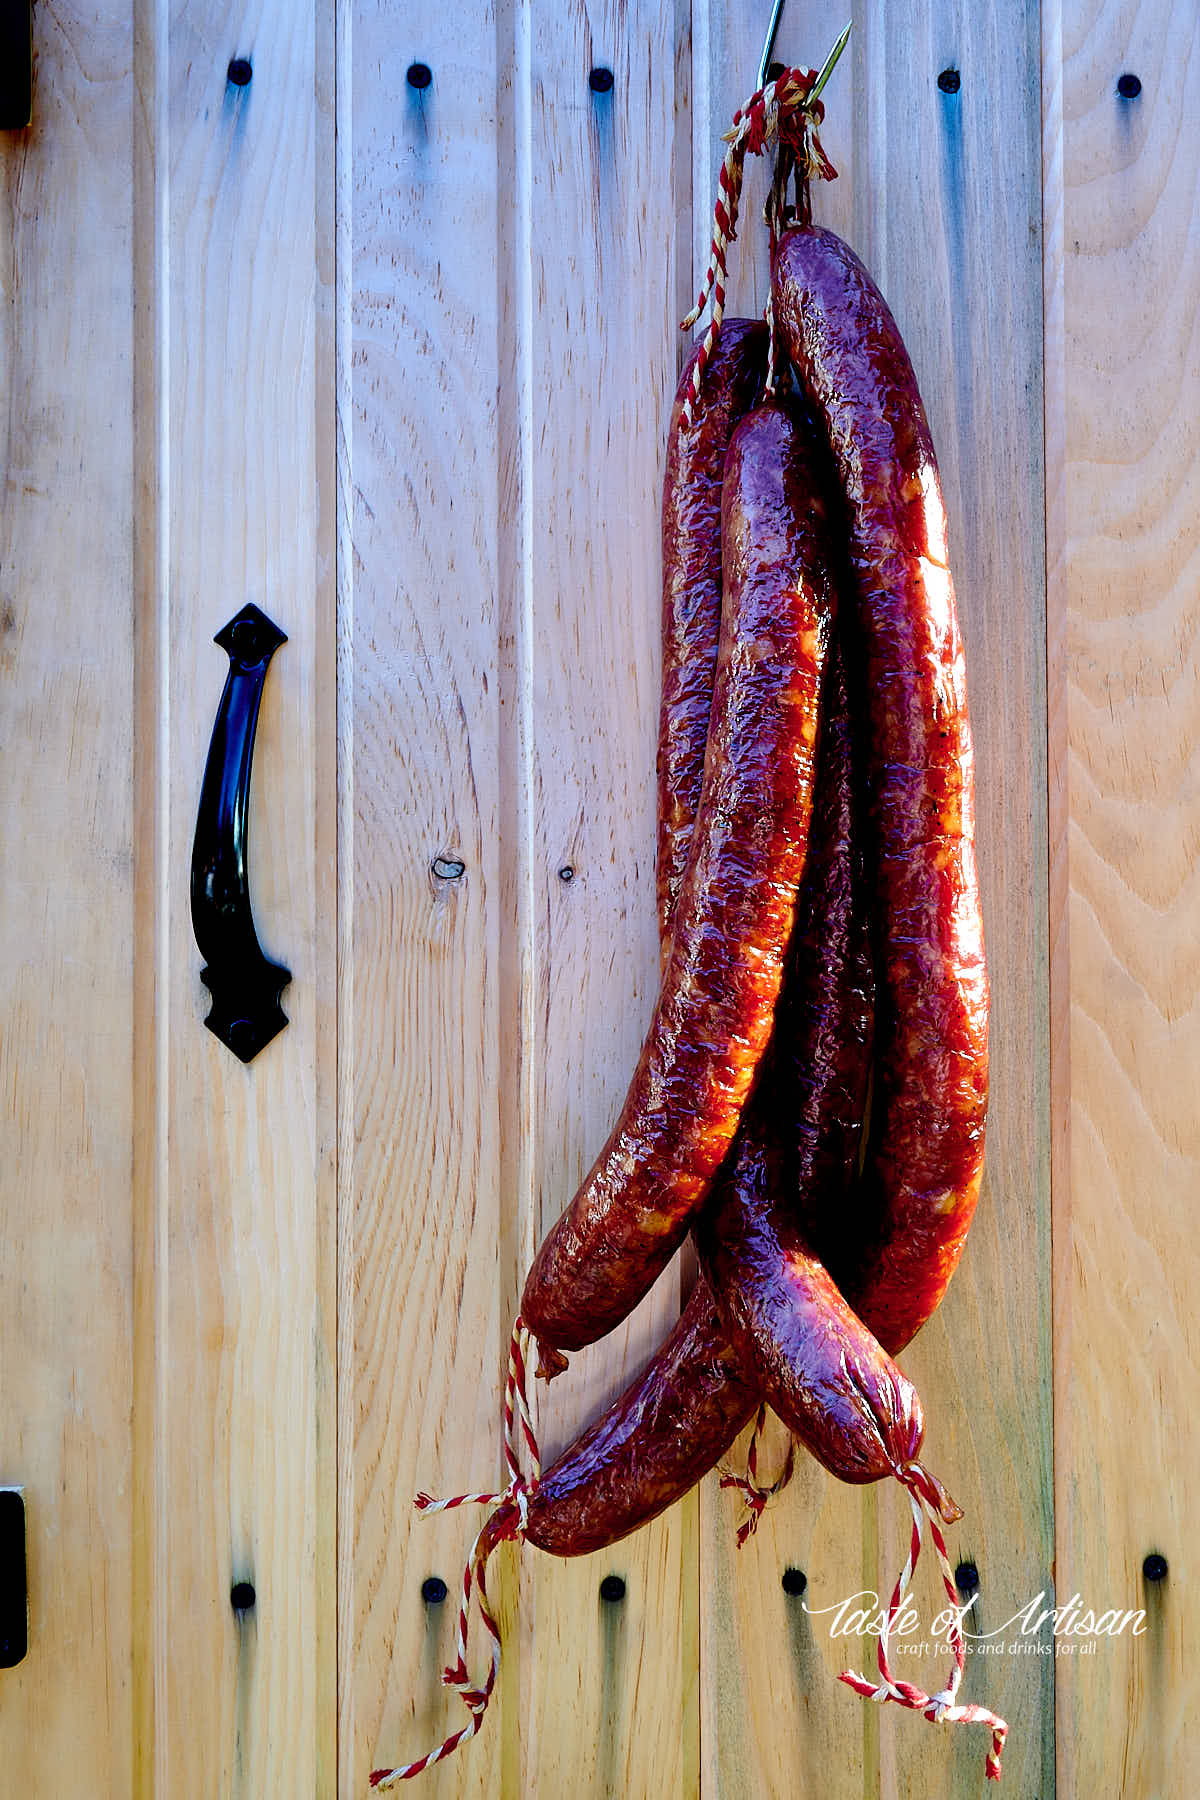 Smoked Andouille sausages hanging on the door or a smokehouse. Rich mahogany color.